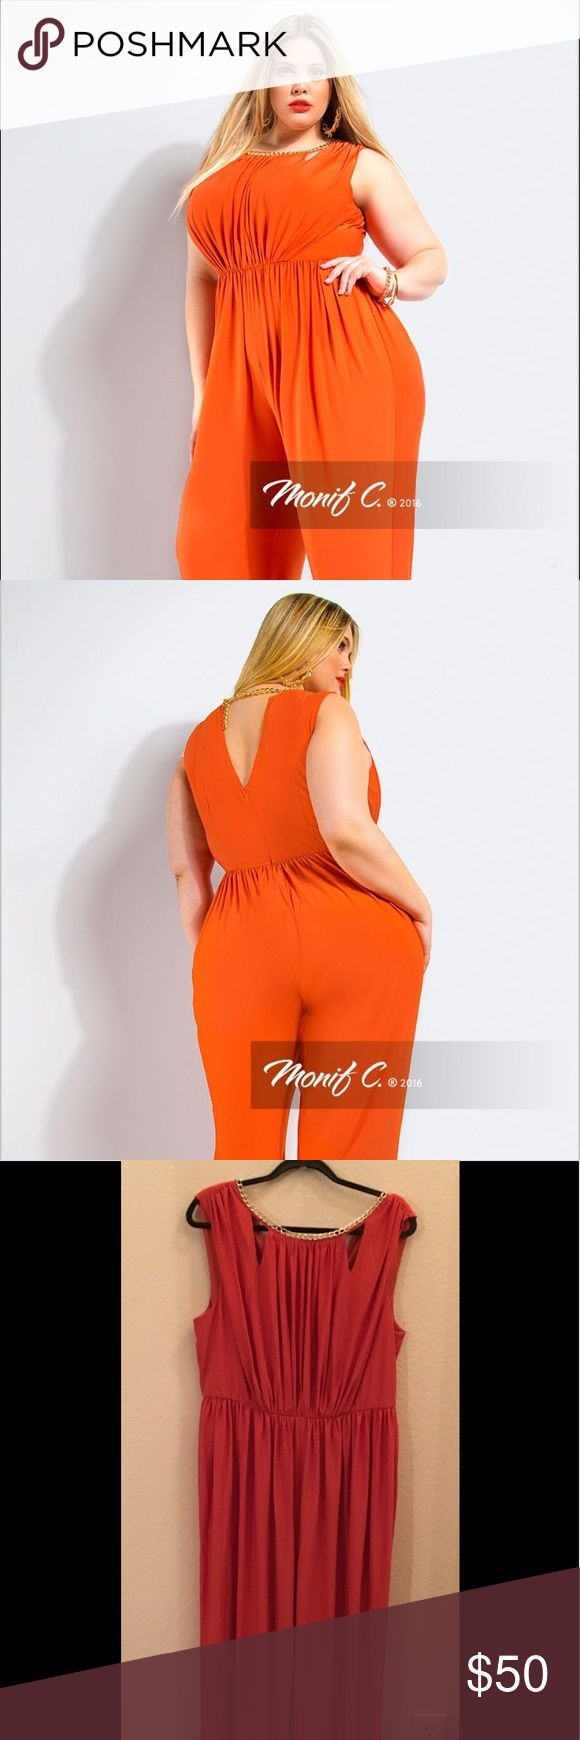 Monif C Camilla Tangerine Draped Jumpsuit Unleash your feminine side! Featuring chain mechanics detail, peek-a-boo neck cutouts, relaxed fit pant leg and gathering in all the right places.  Go all out and style it with a strappy sandal or wear with a blazer a sleek heels for the office.  Only has been worn once. Monif C. Pants Jumpsuits & Rompers